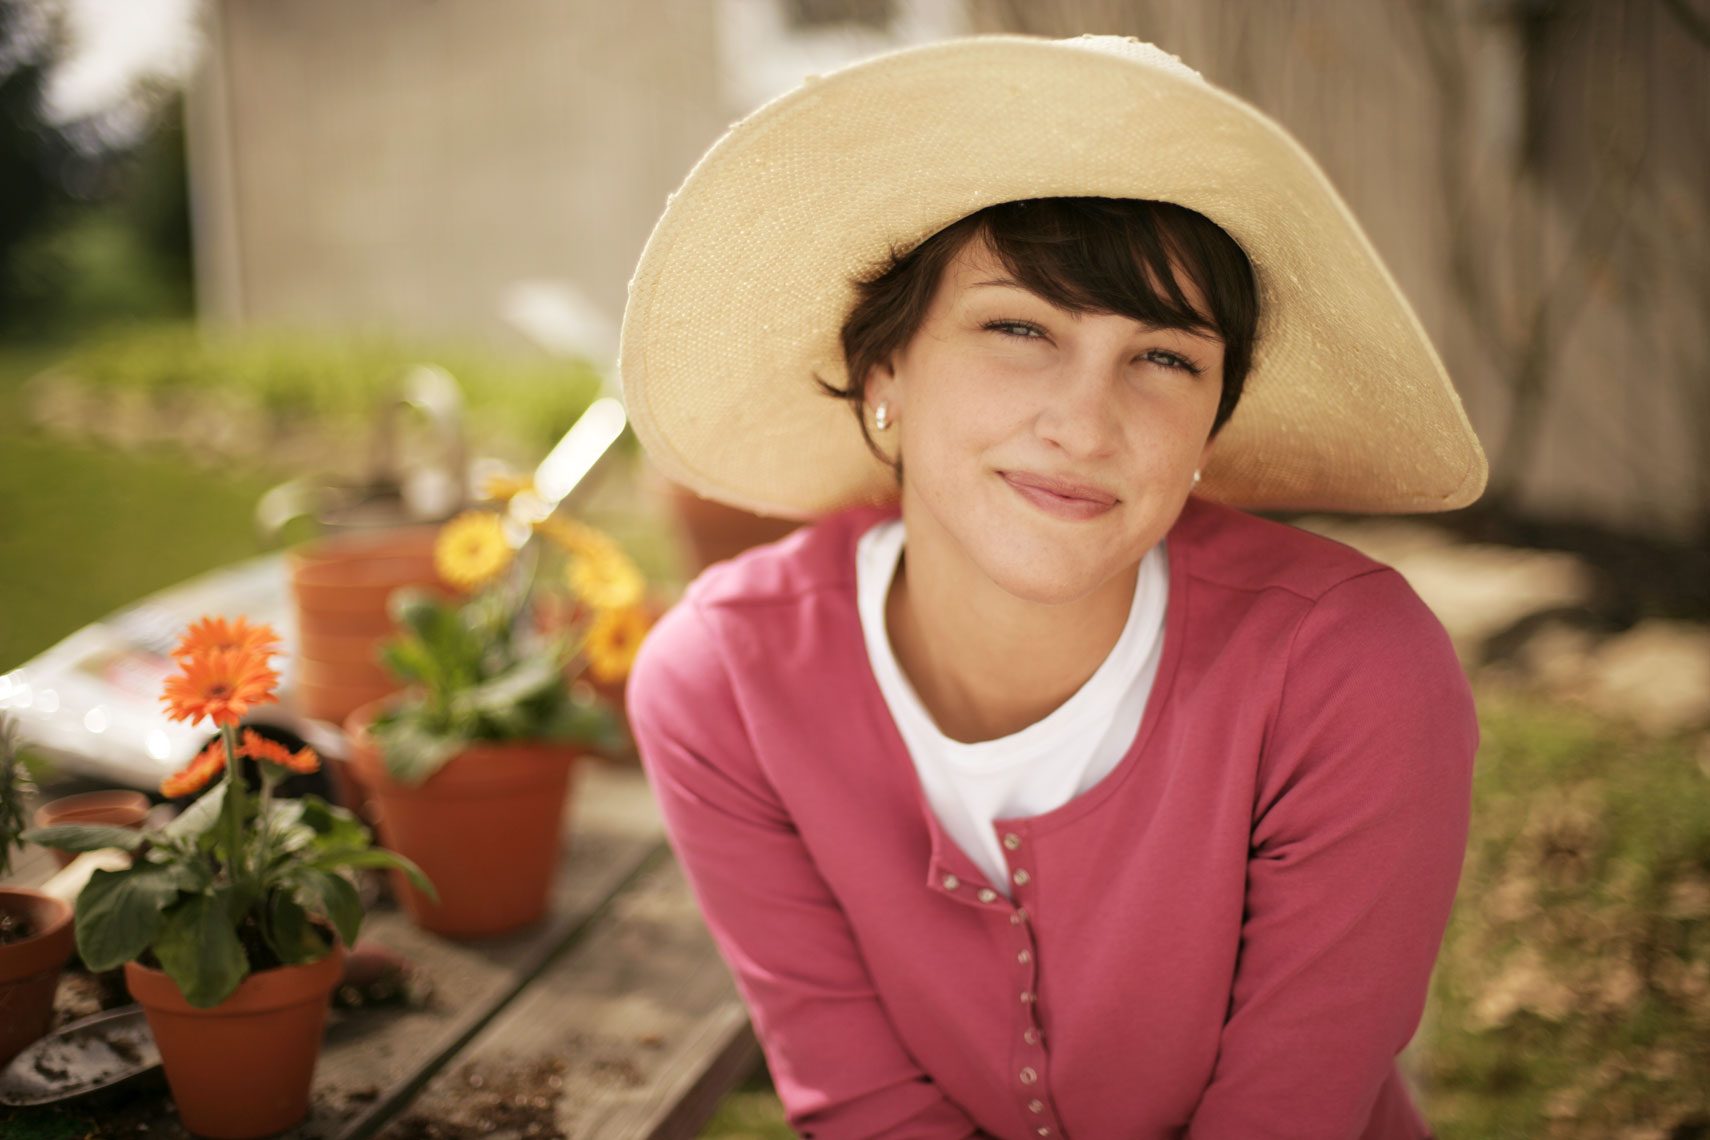 Advertising lifestyle portrait of a woman gardening